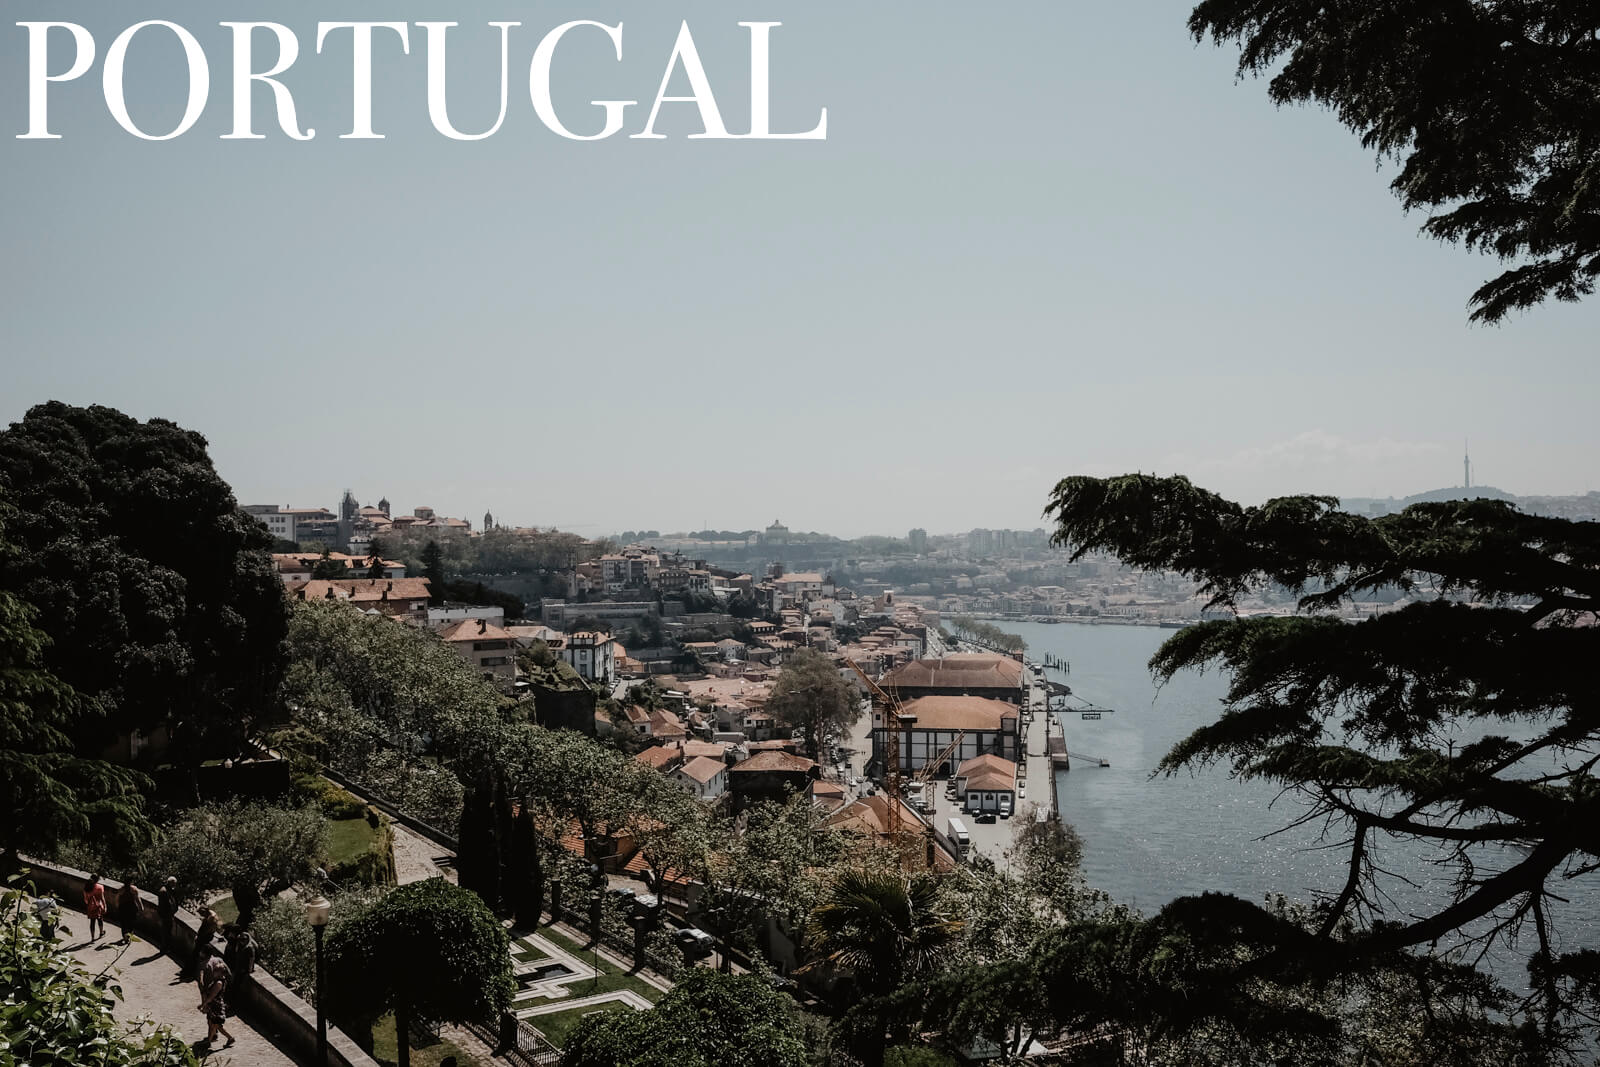 Portugal-Travel-Voyage-Jordane-Chaillou-Photographe